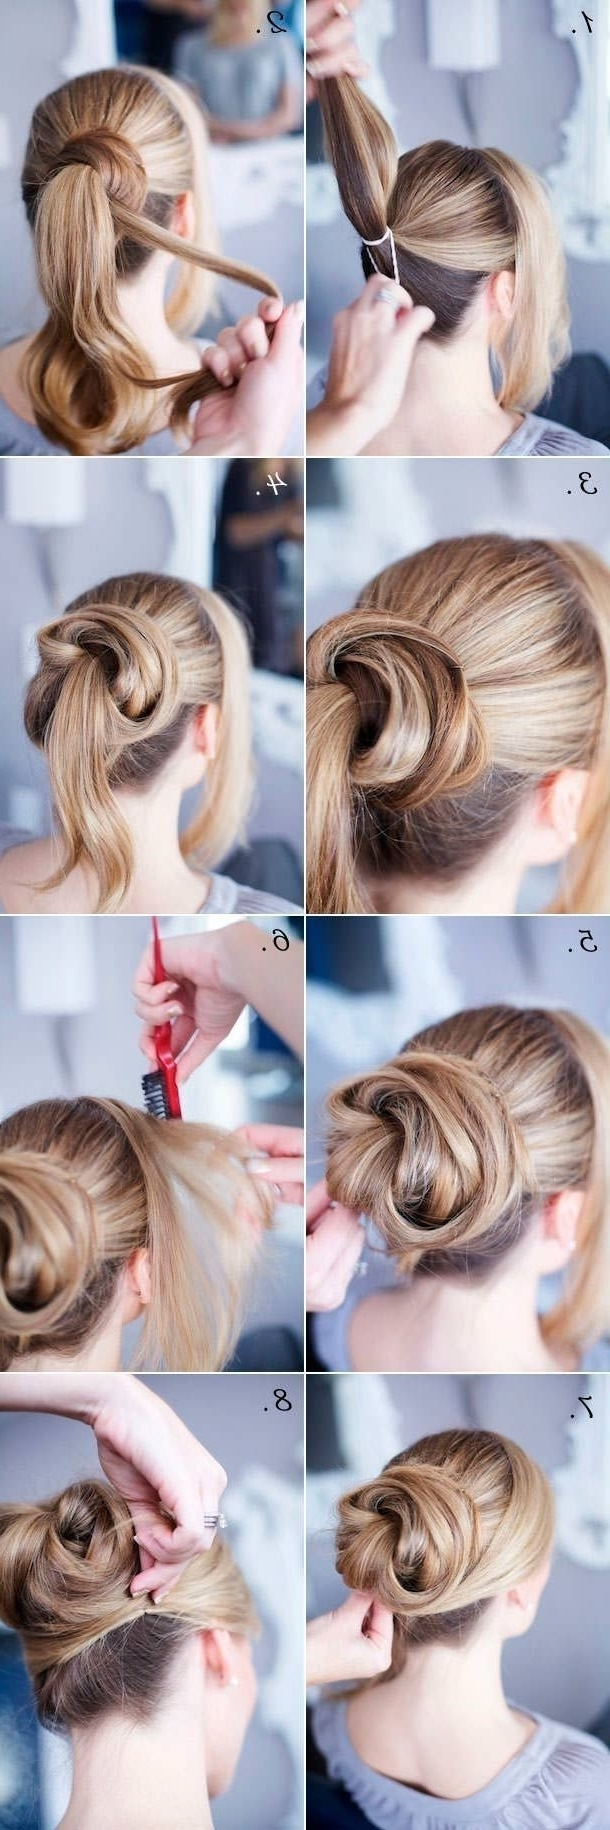 Cute Easy Updo Hairstyles For Long Hair – Women Medium Haircut Regarding Cute Easy Updo Hairstyles (View 5 of 15)